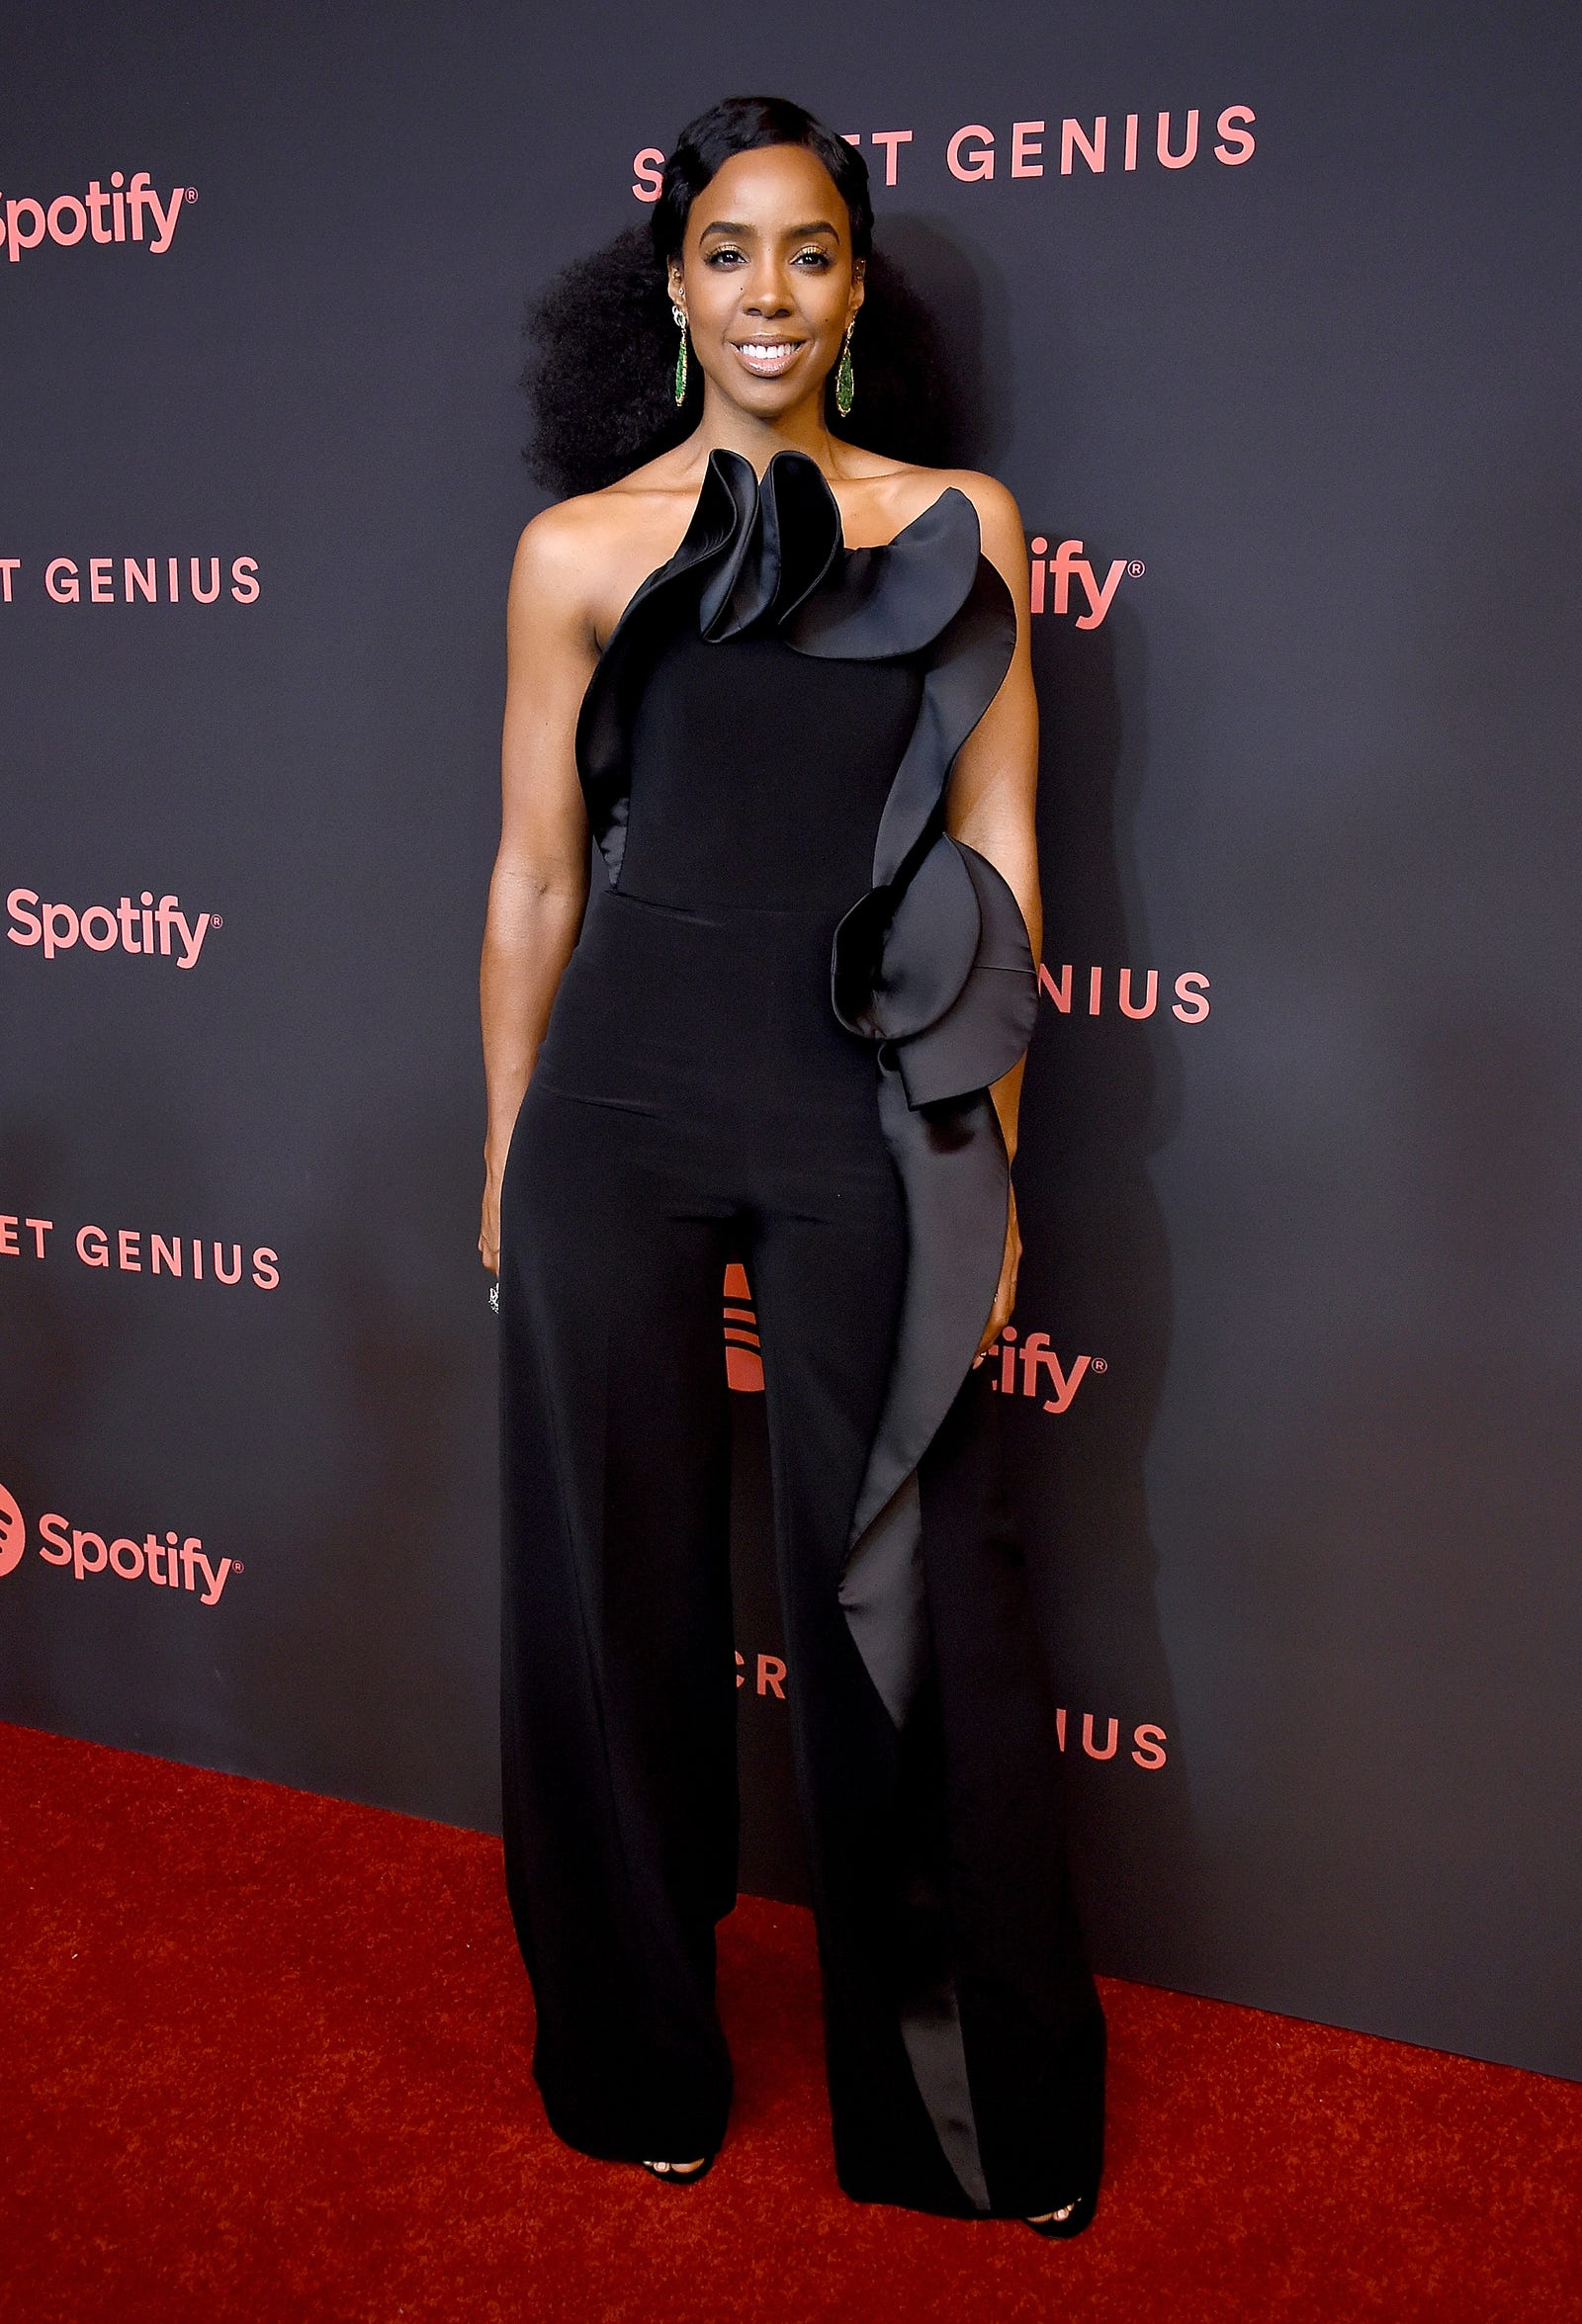 Kelly Rowland arrives at Spotify's 2nd Annual Secret Genius Awards at The Theatre on November 16, 2018 in Los Angeles, California.